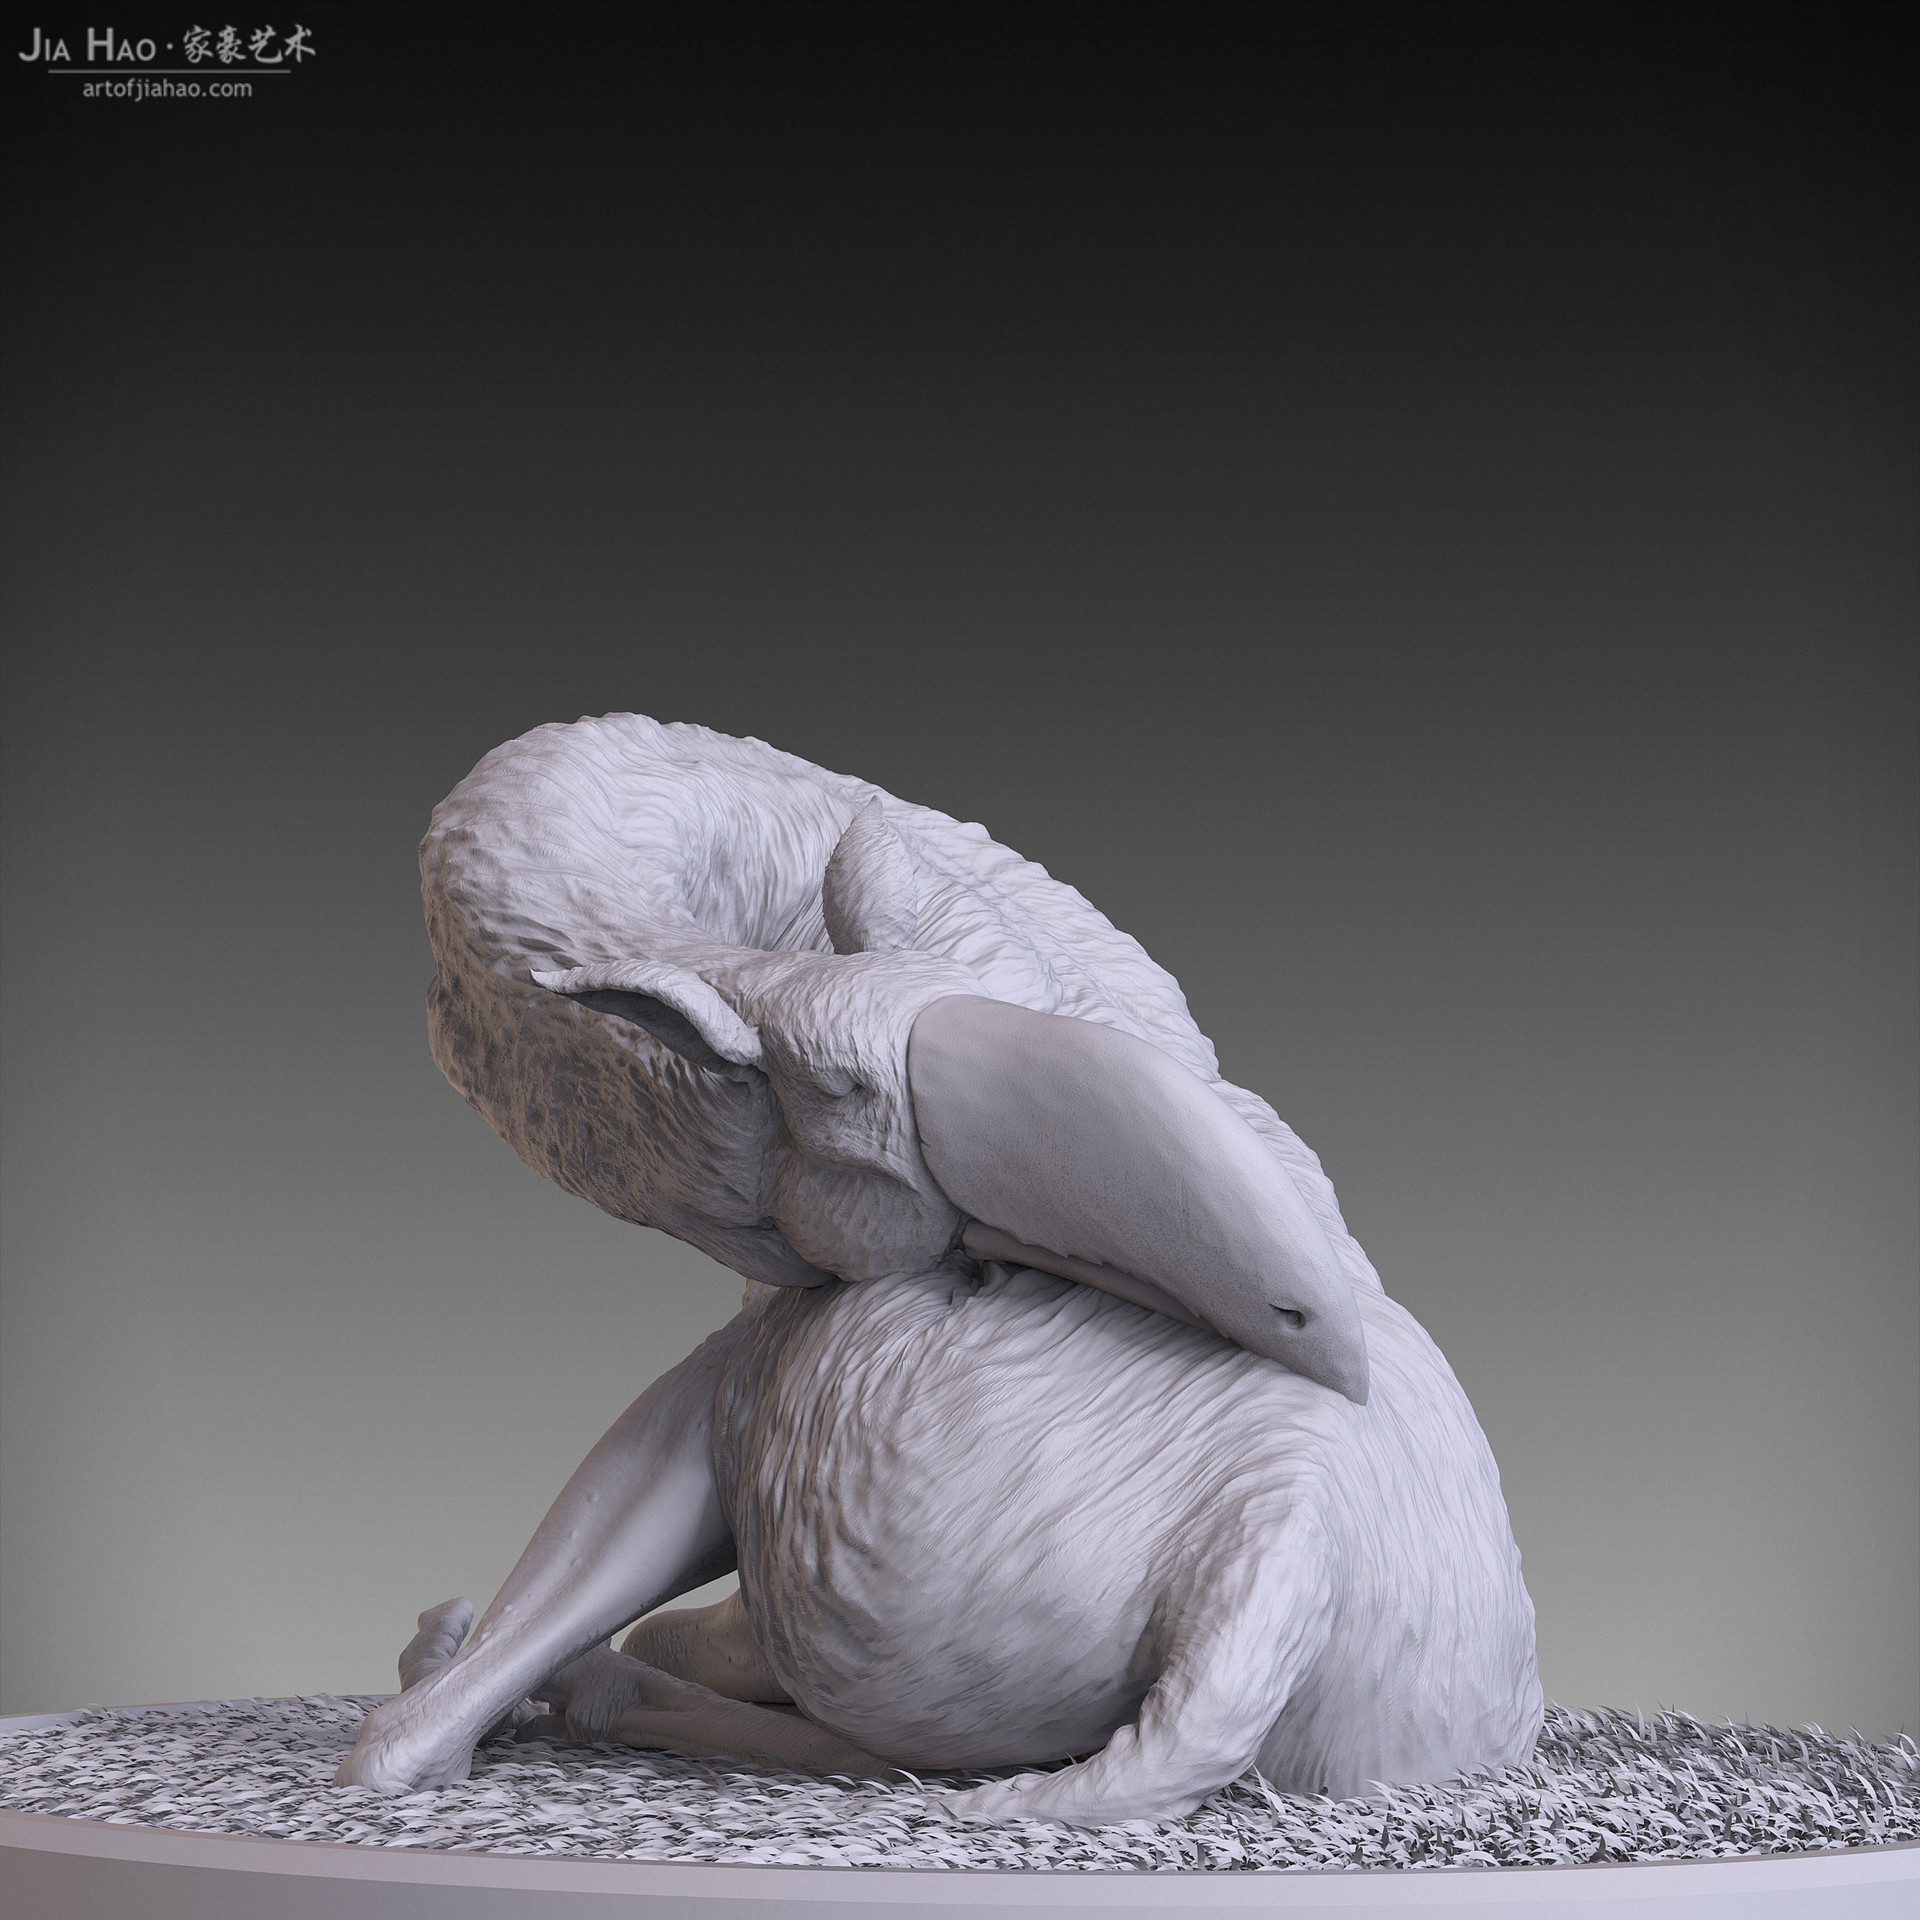 Jia hao 2017 toucaffesleeping digitalsculpting 03